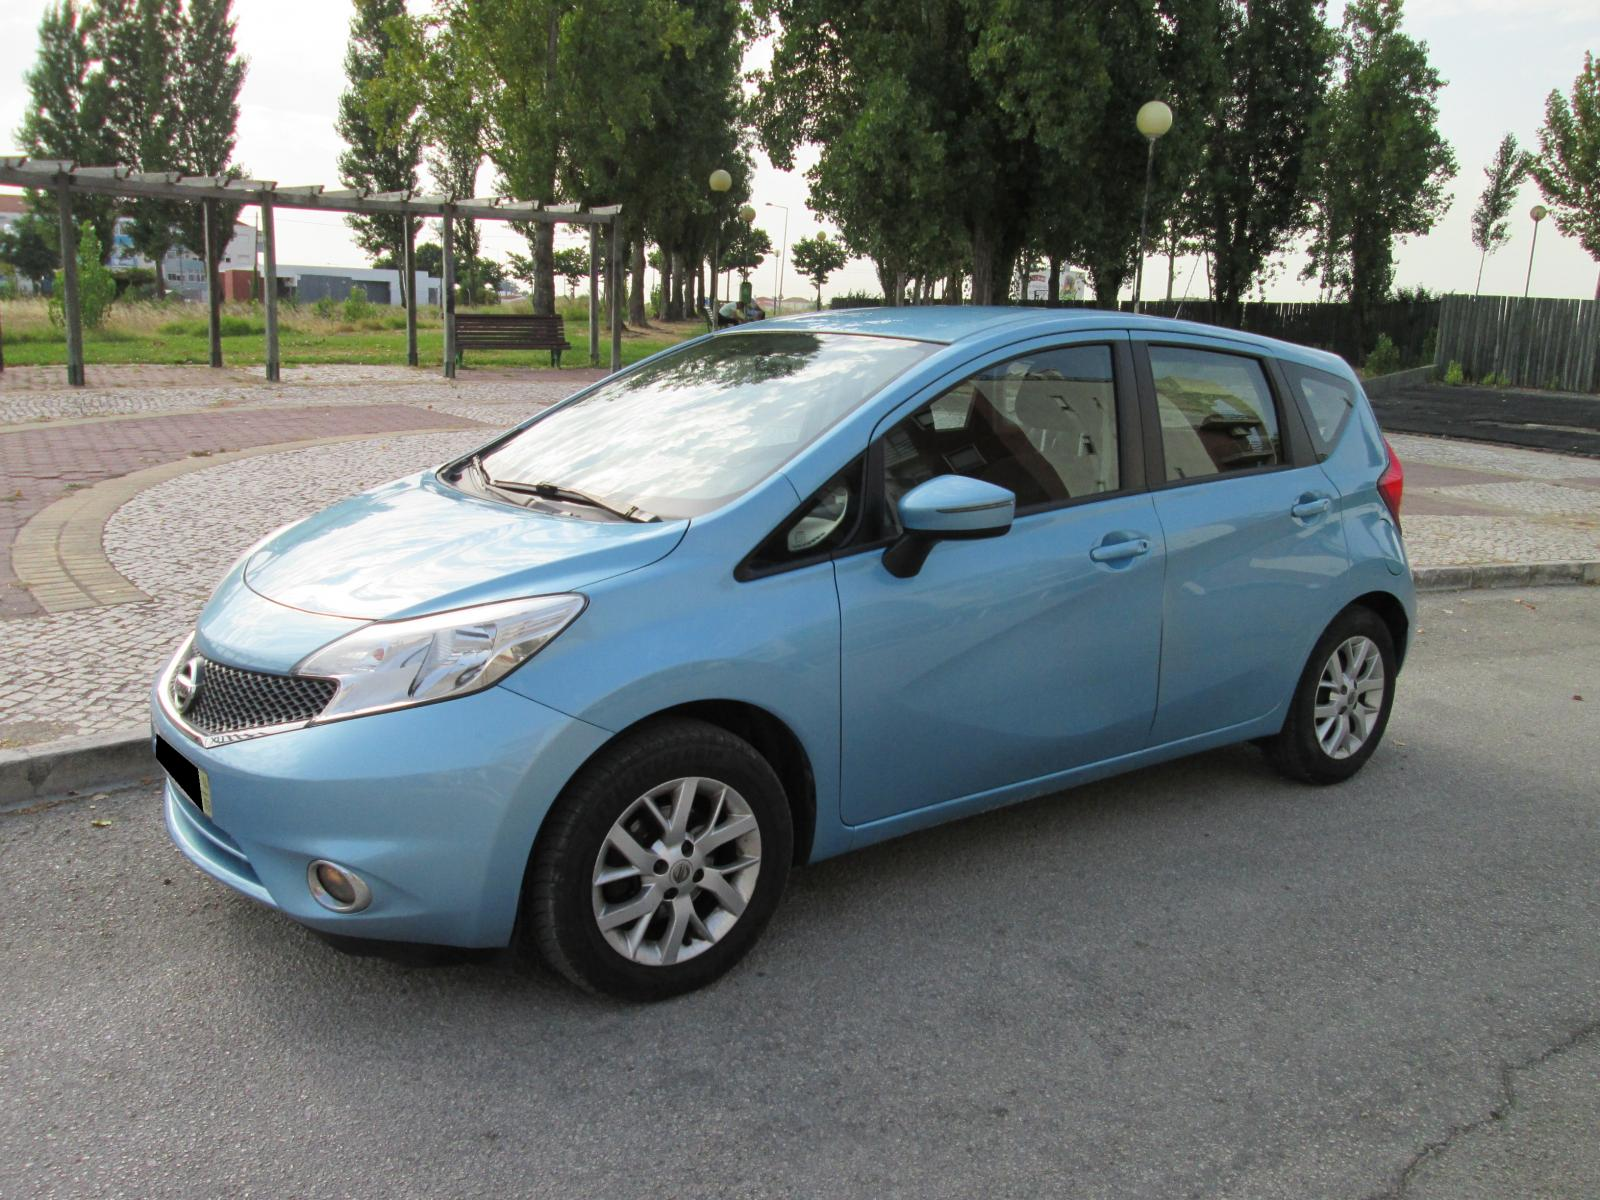 Nissan-Note 1.5 dCi